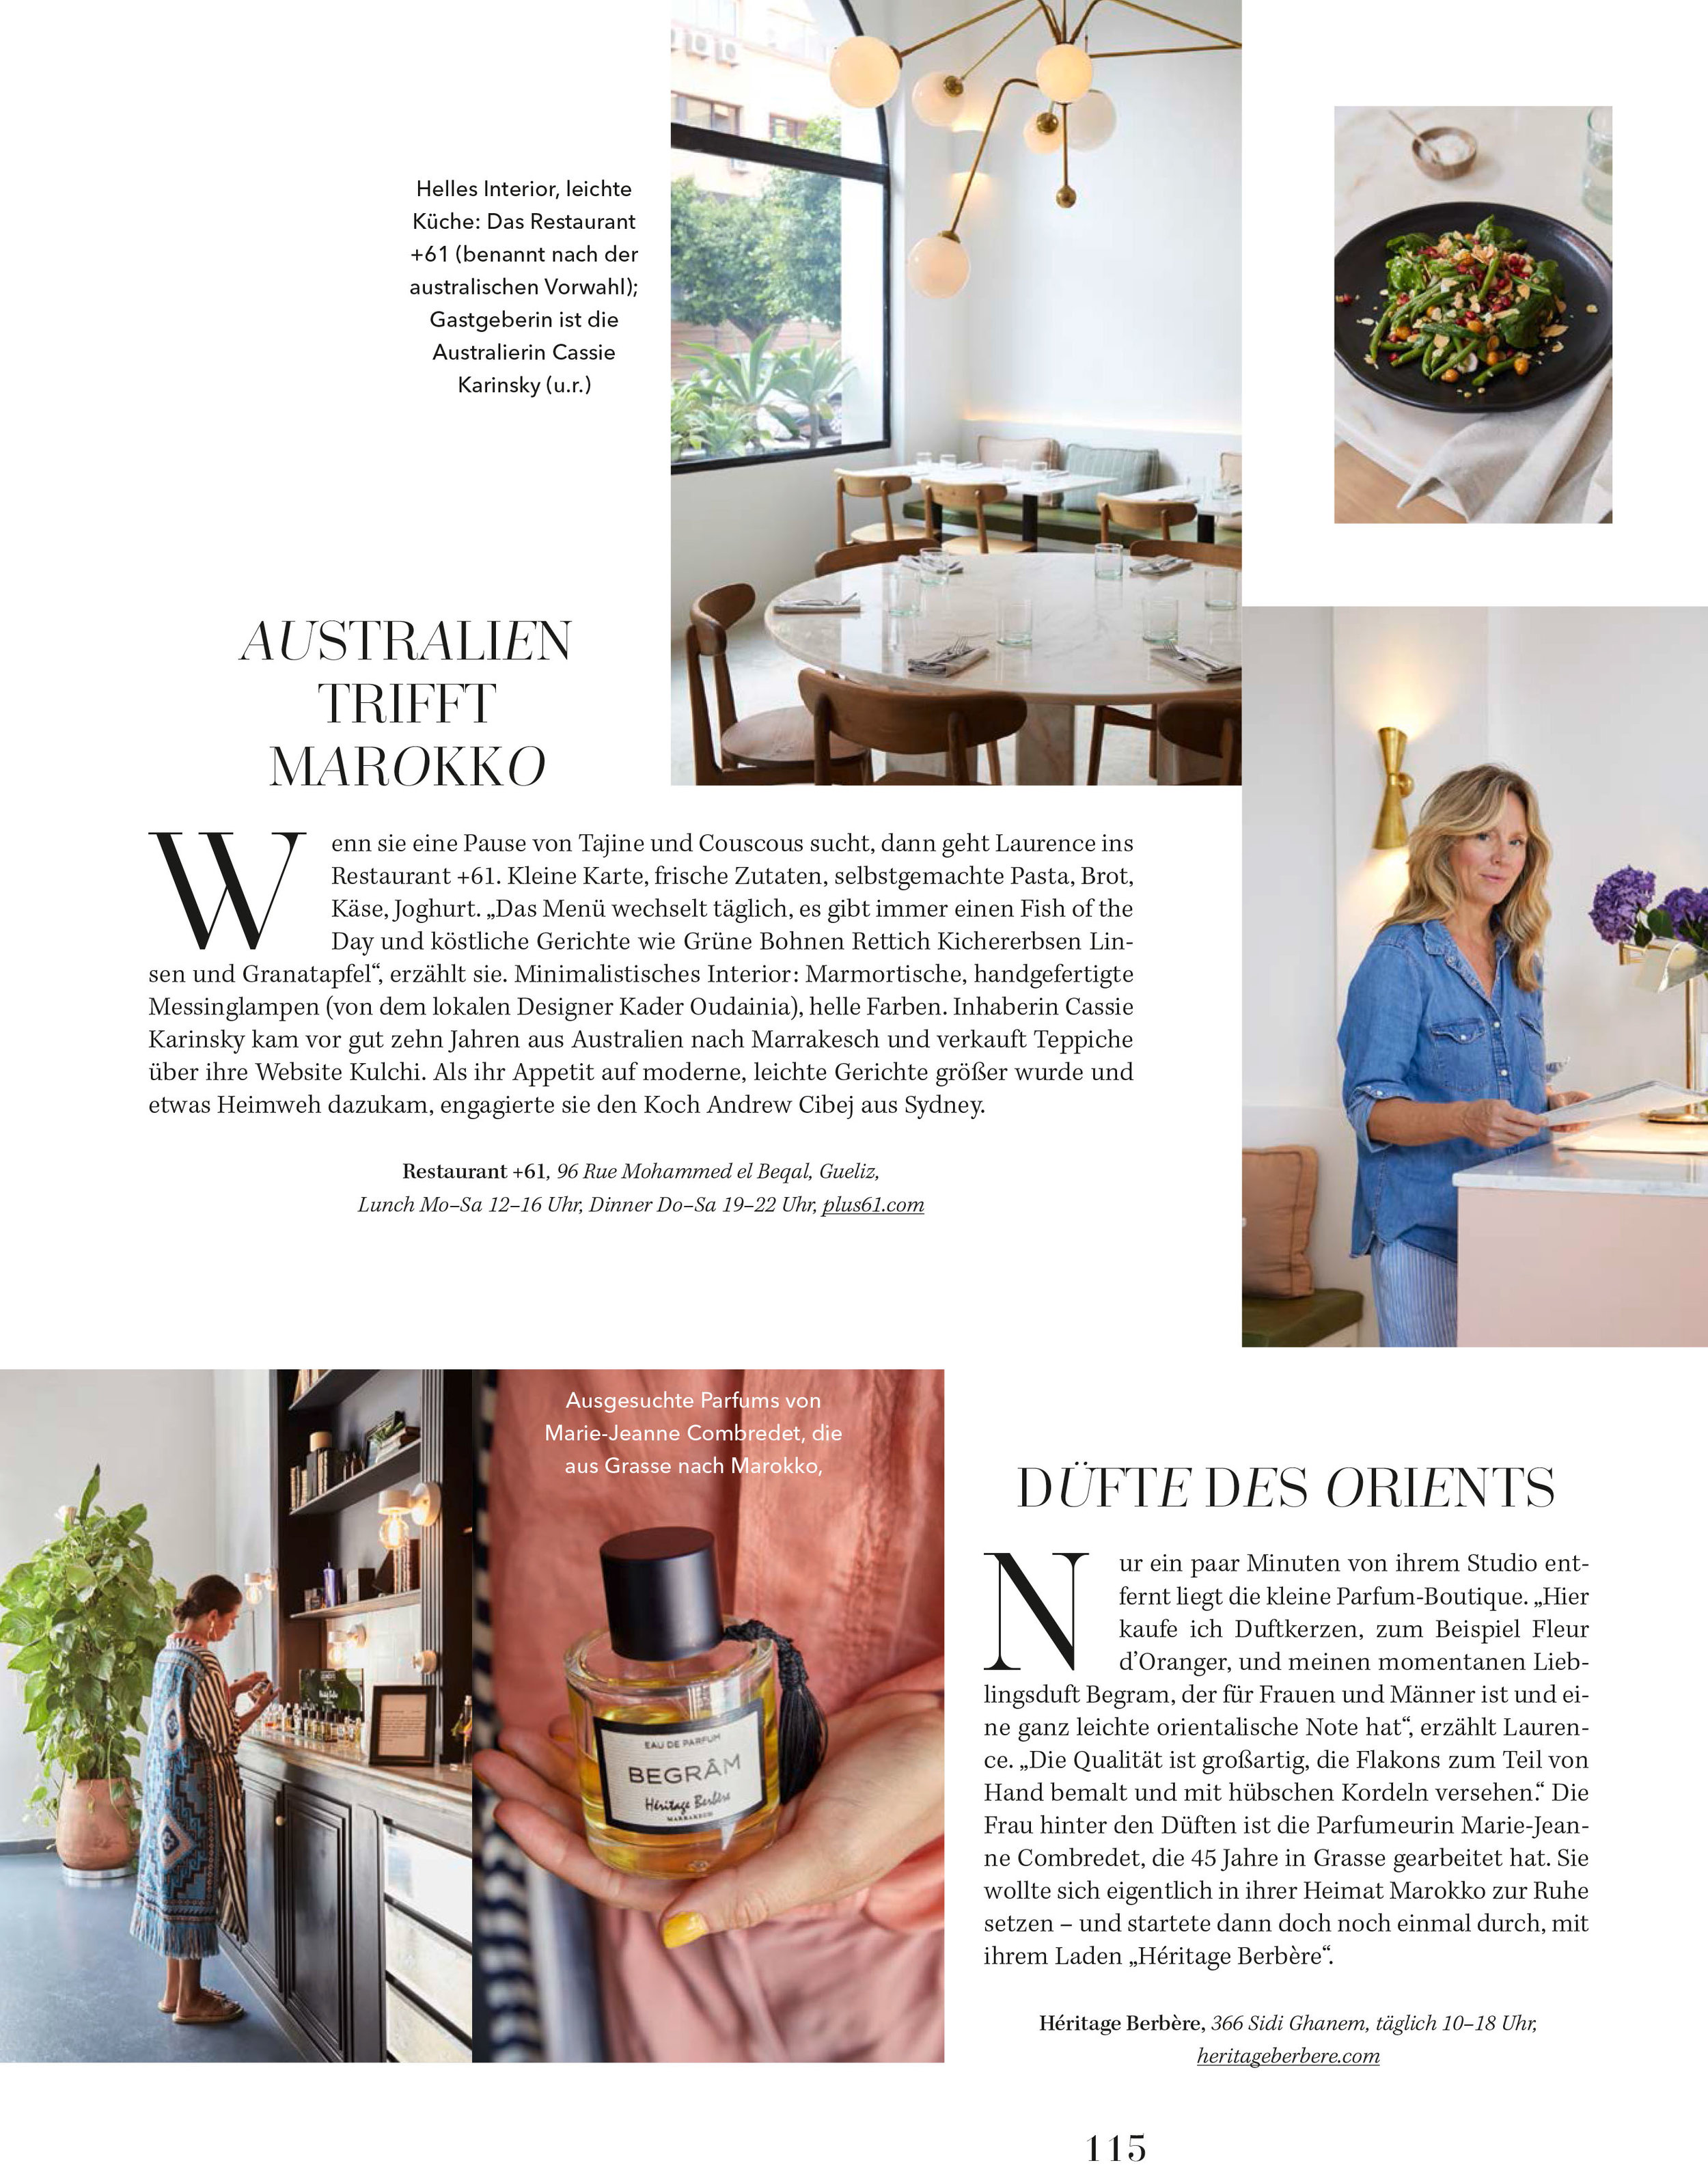 Salon Magazine Germany, March 2019  Photographer – Brita Sonnichsen  Text – Antje Wewer